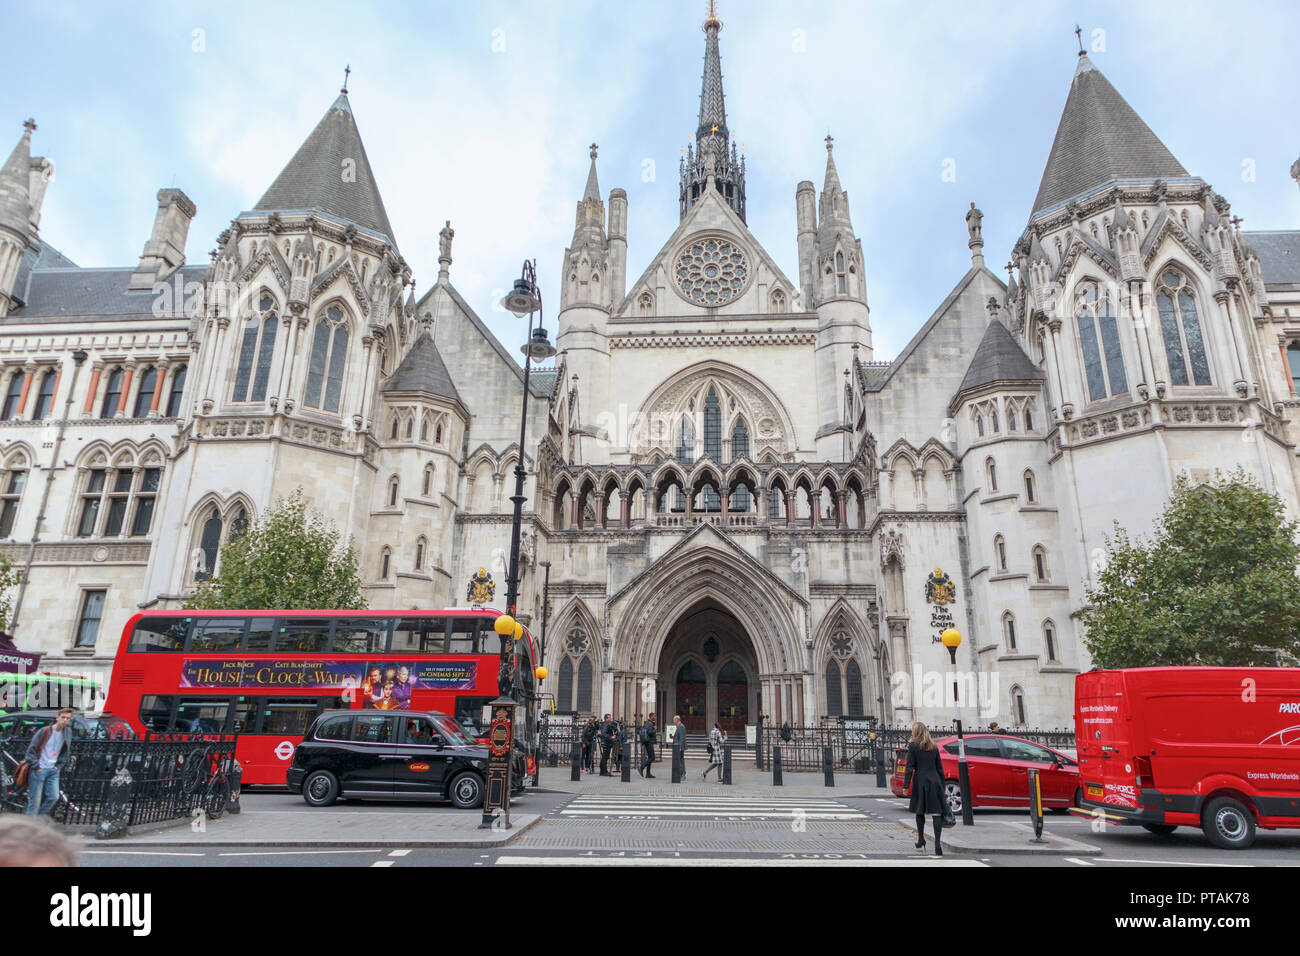 Royal Courts of Justice in Strand, City of Westminster, London WC2, civil law courts for the High Court and Court of Appeal for England and Wales Stock Photo